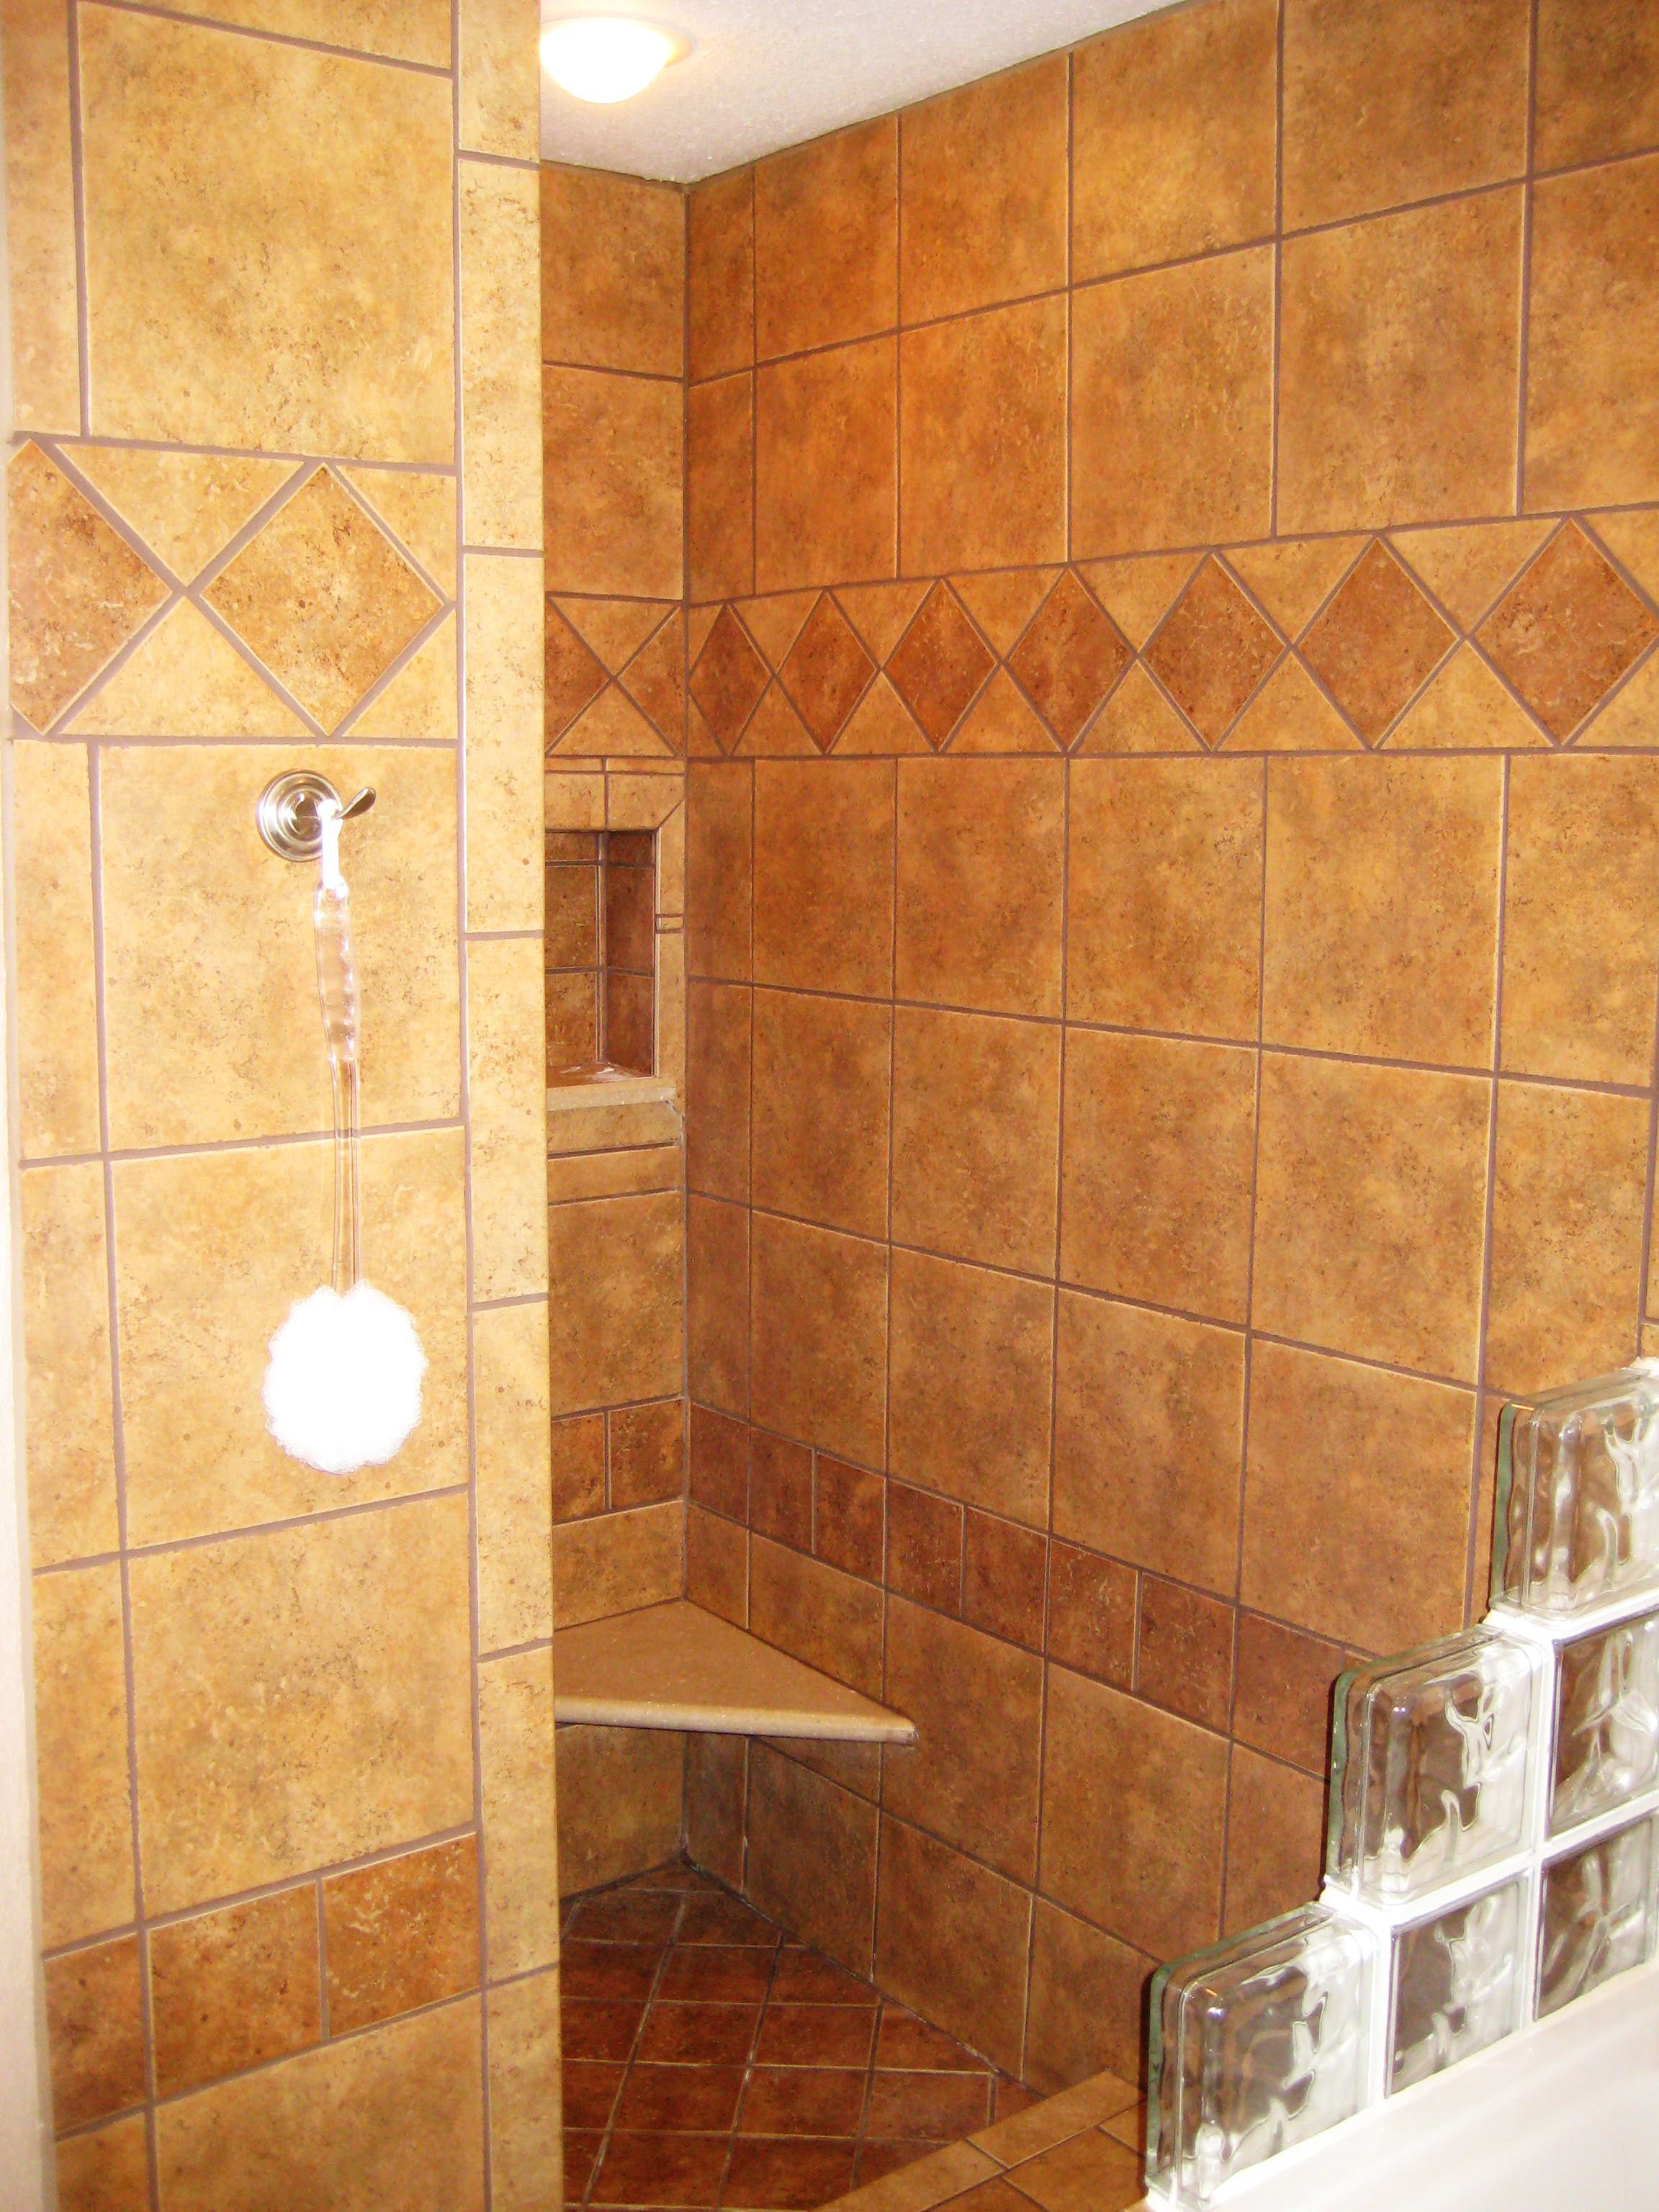 17+ Images About Shower Designs On Pinterest | Lowes, Tile Stores